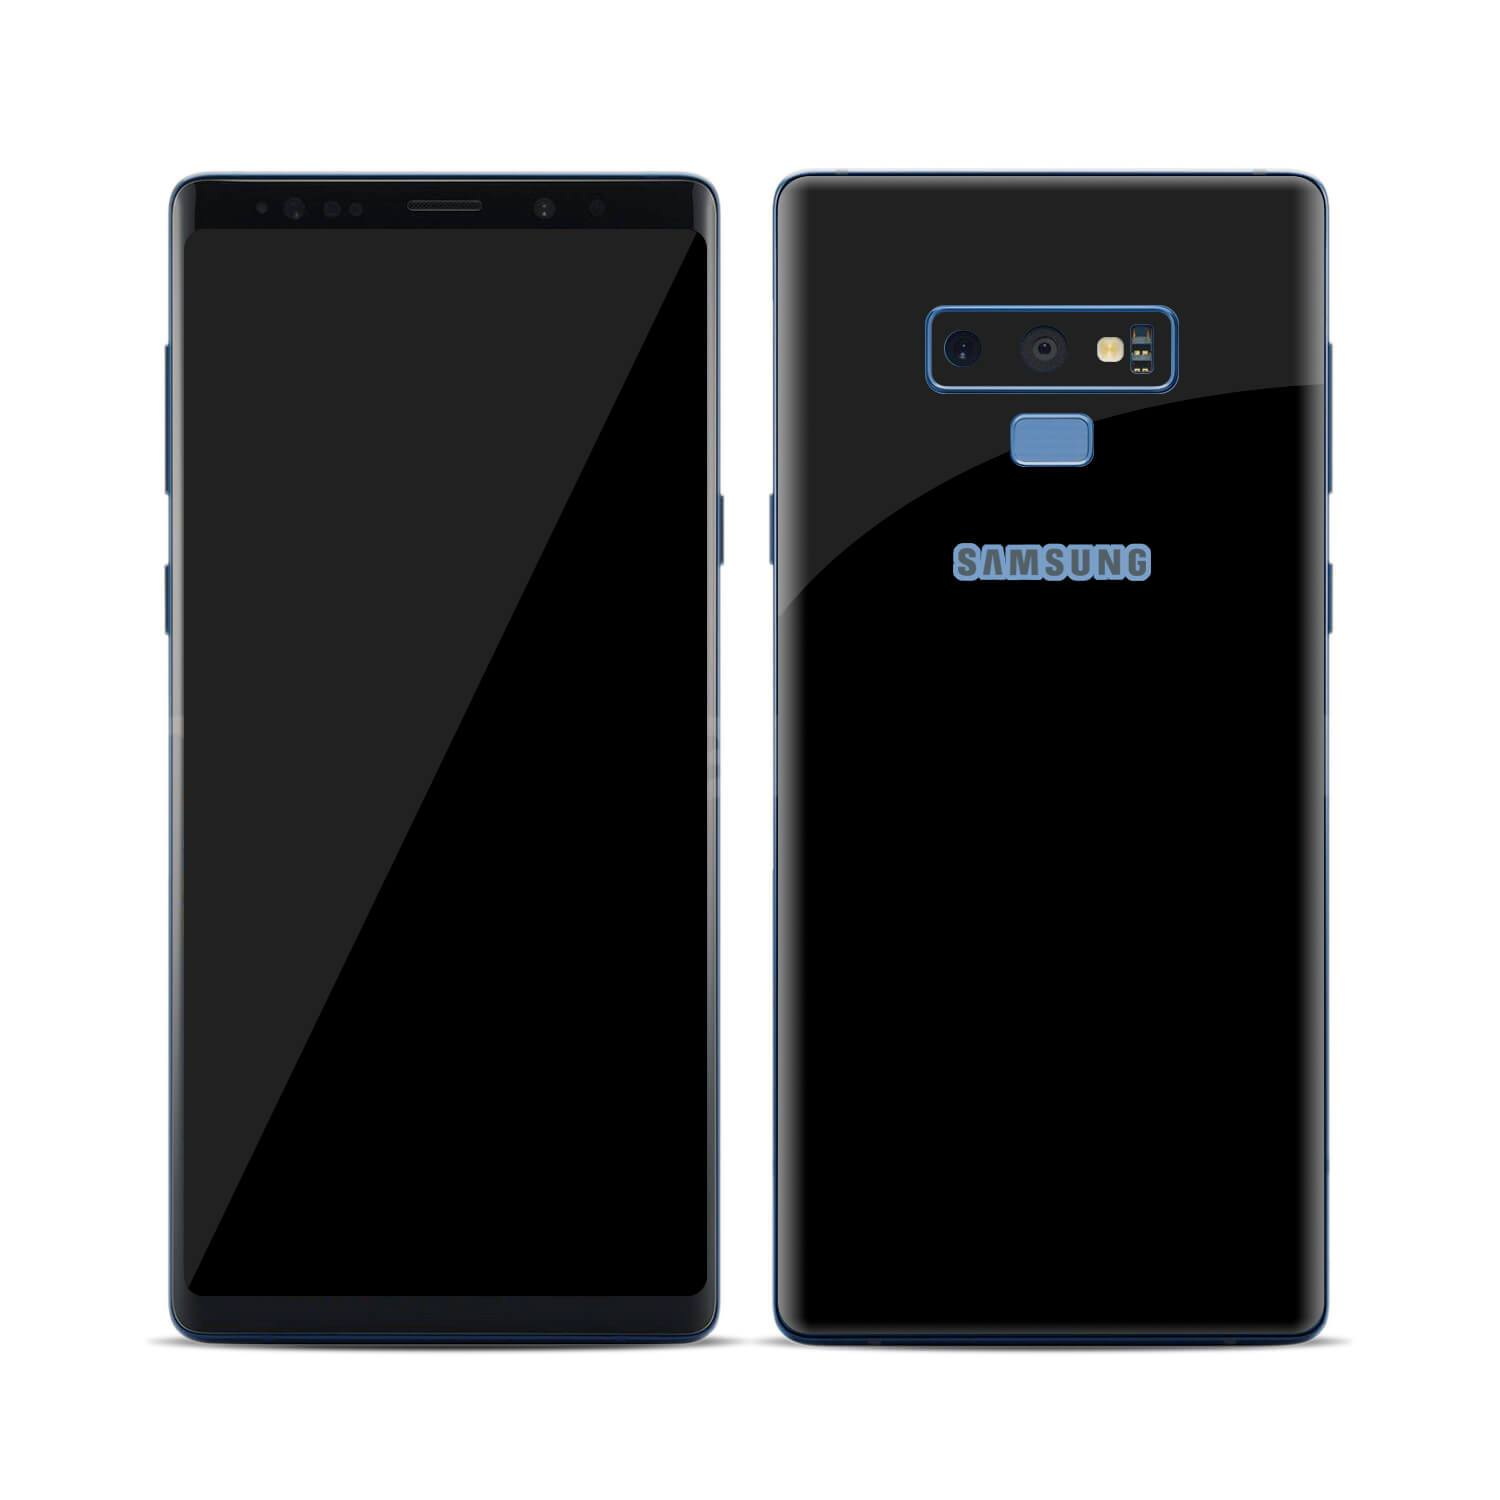 Samsung Note 9 Midnight Black with all accessories and Box - photo 2